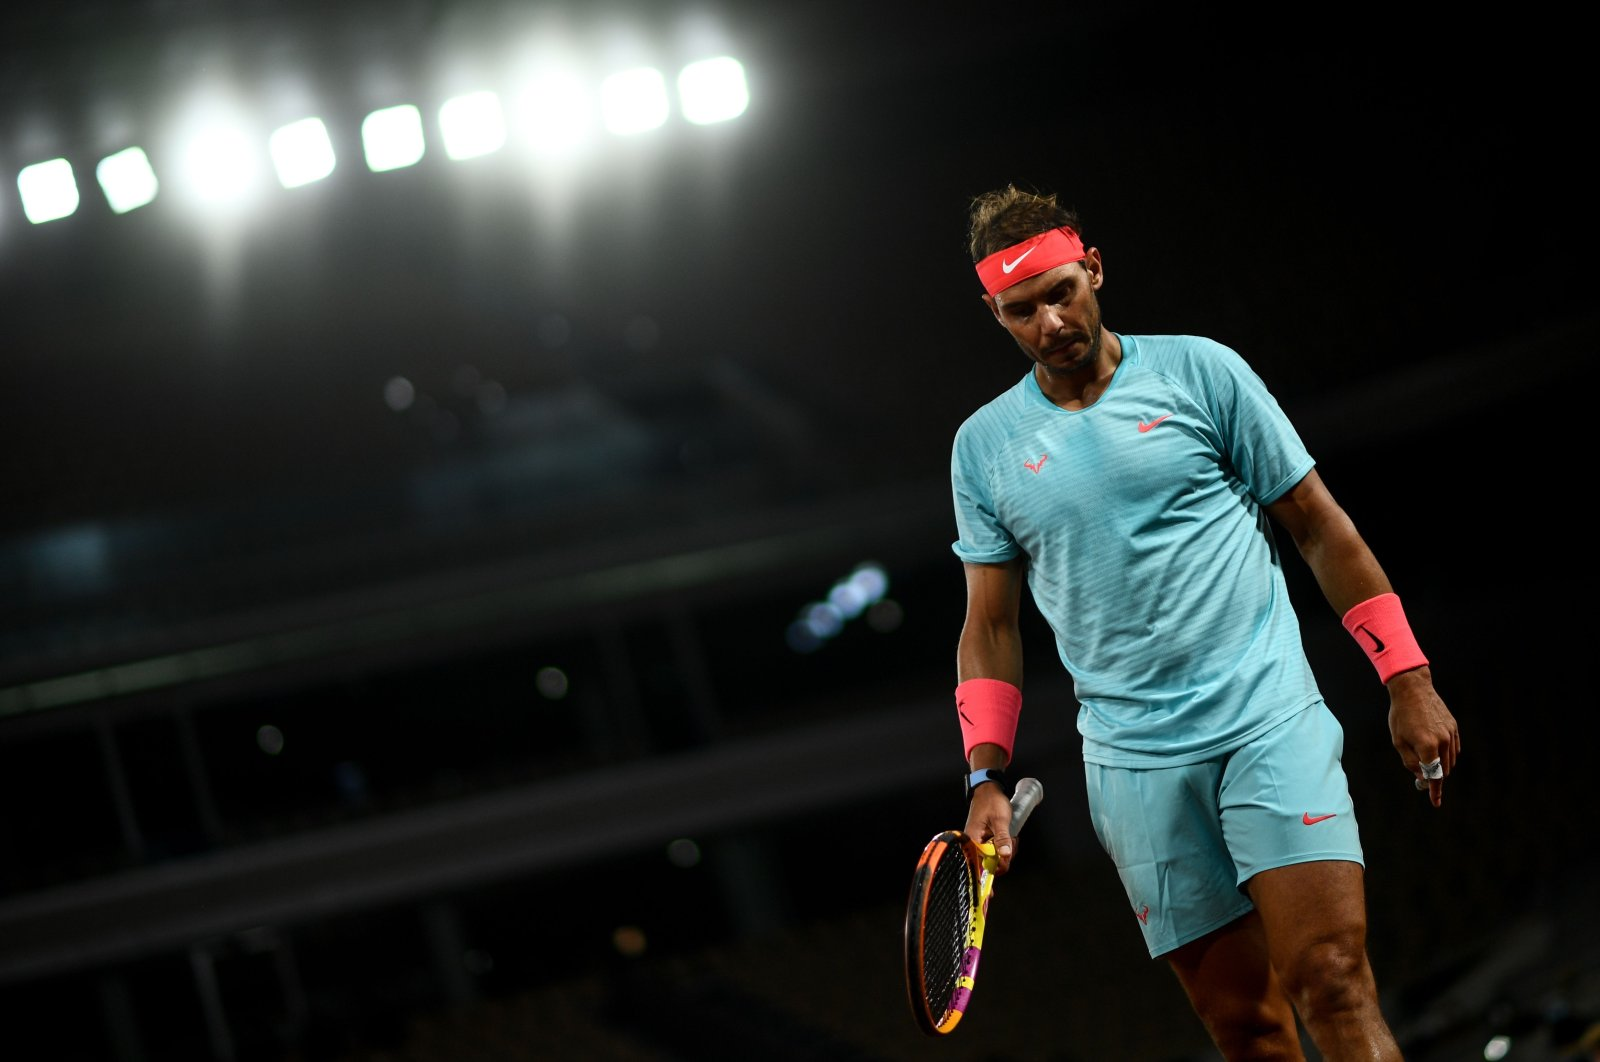 Rafael Nadal reacts during the French Open quarterfinal match against Jannik Sinner, in Paris, France, Oct. 6, 2020. (AFP Photo)